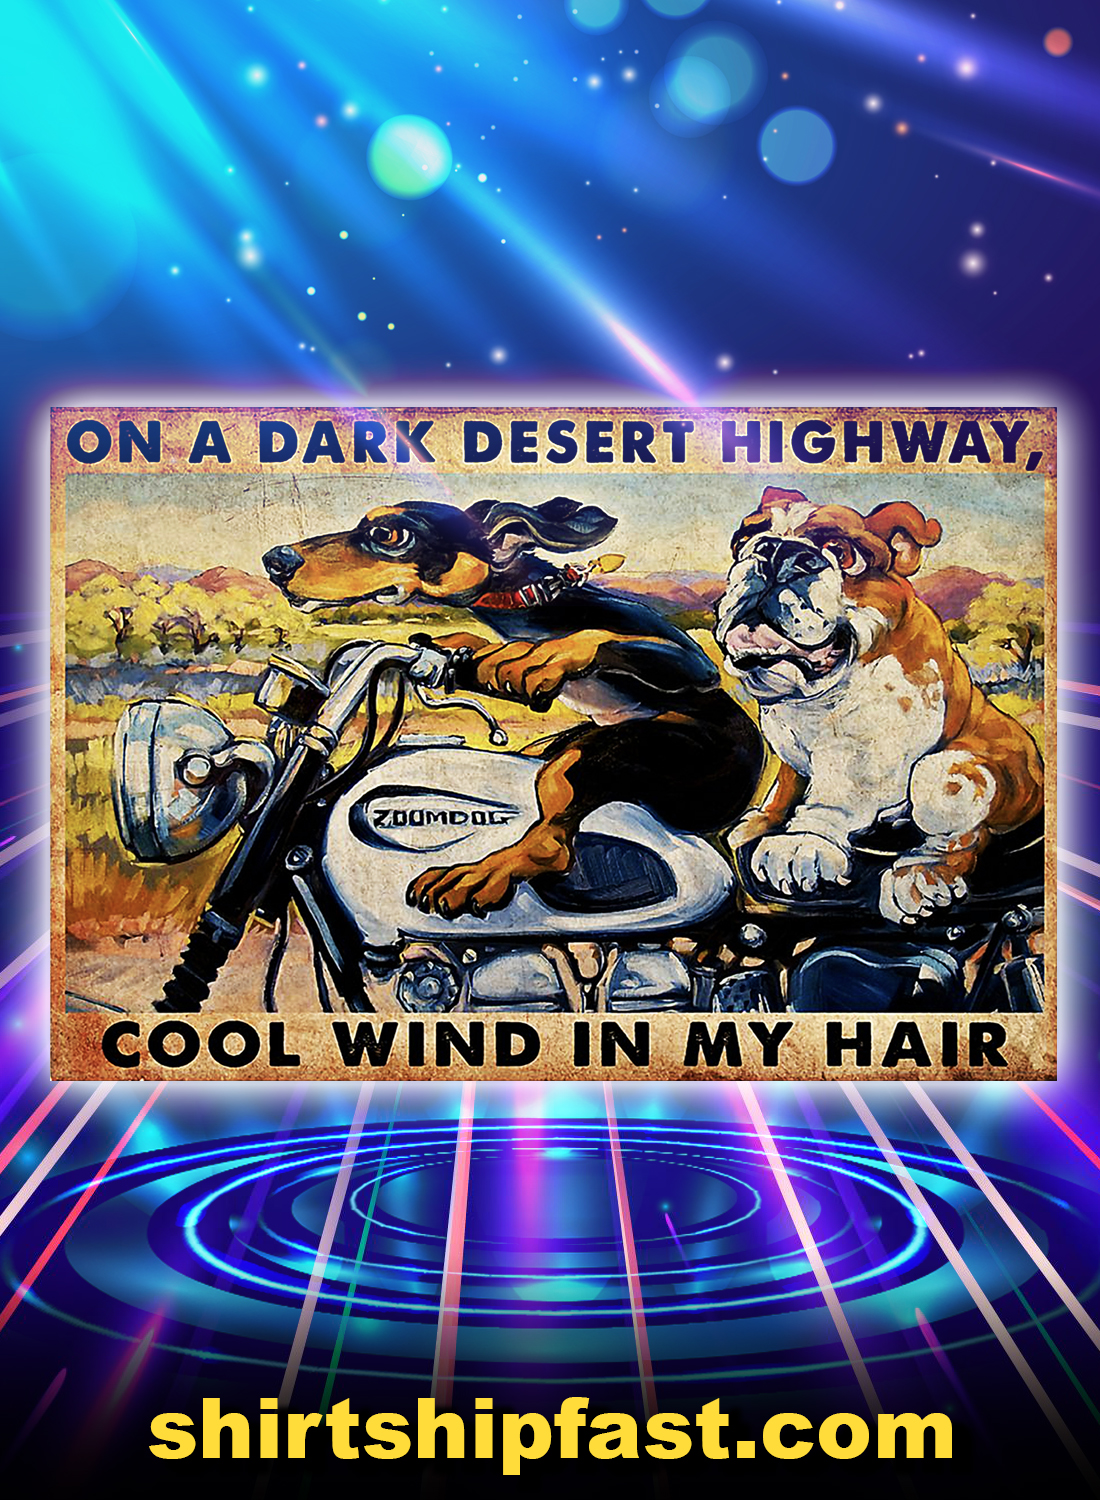 Motorcycle dachshund and bulldog on a dark desert highway cool wind in my hair poster - A4